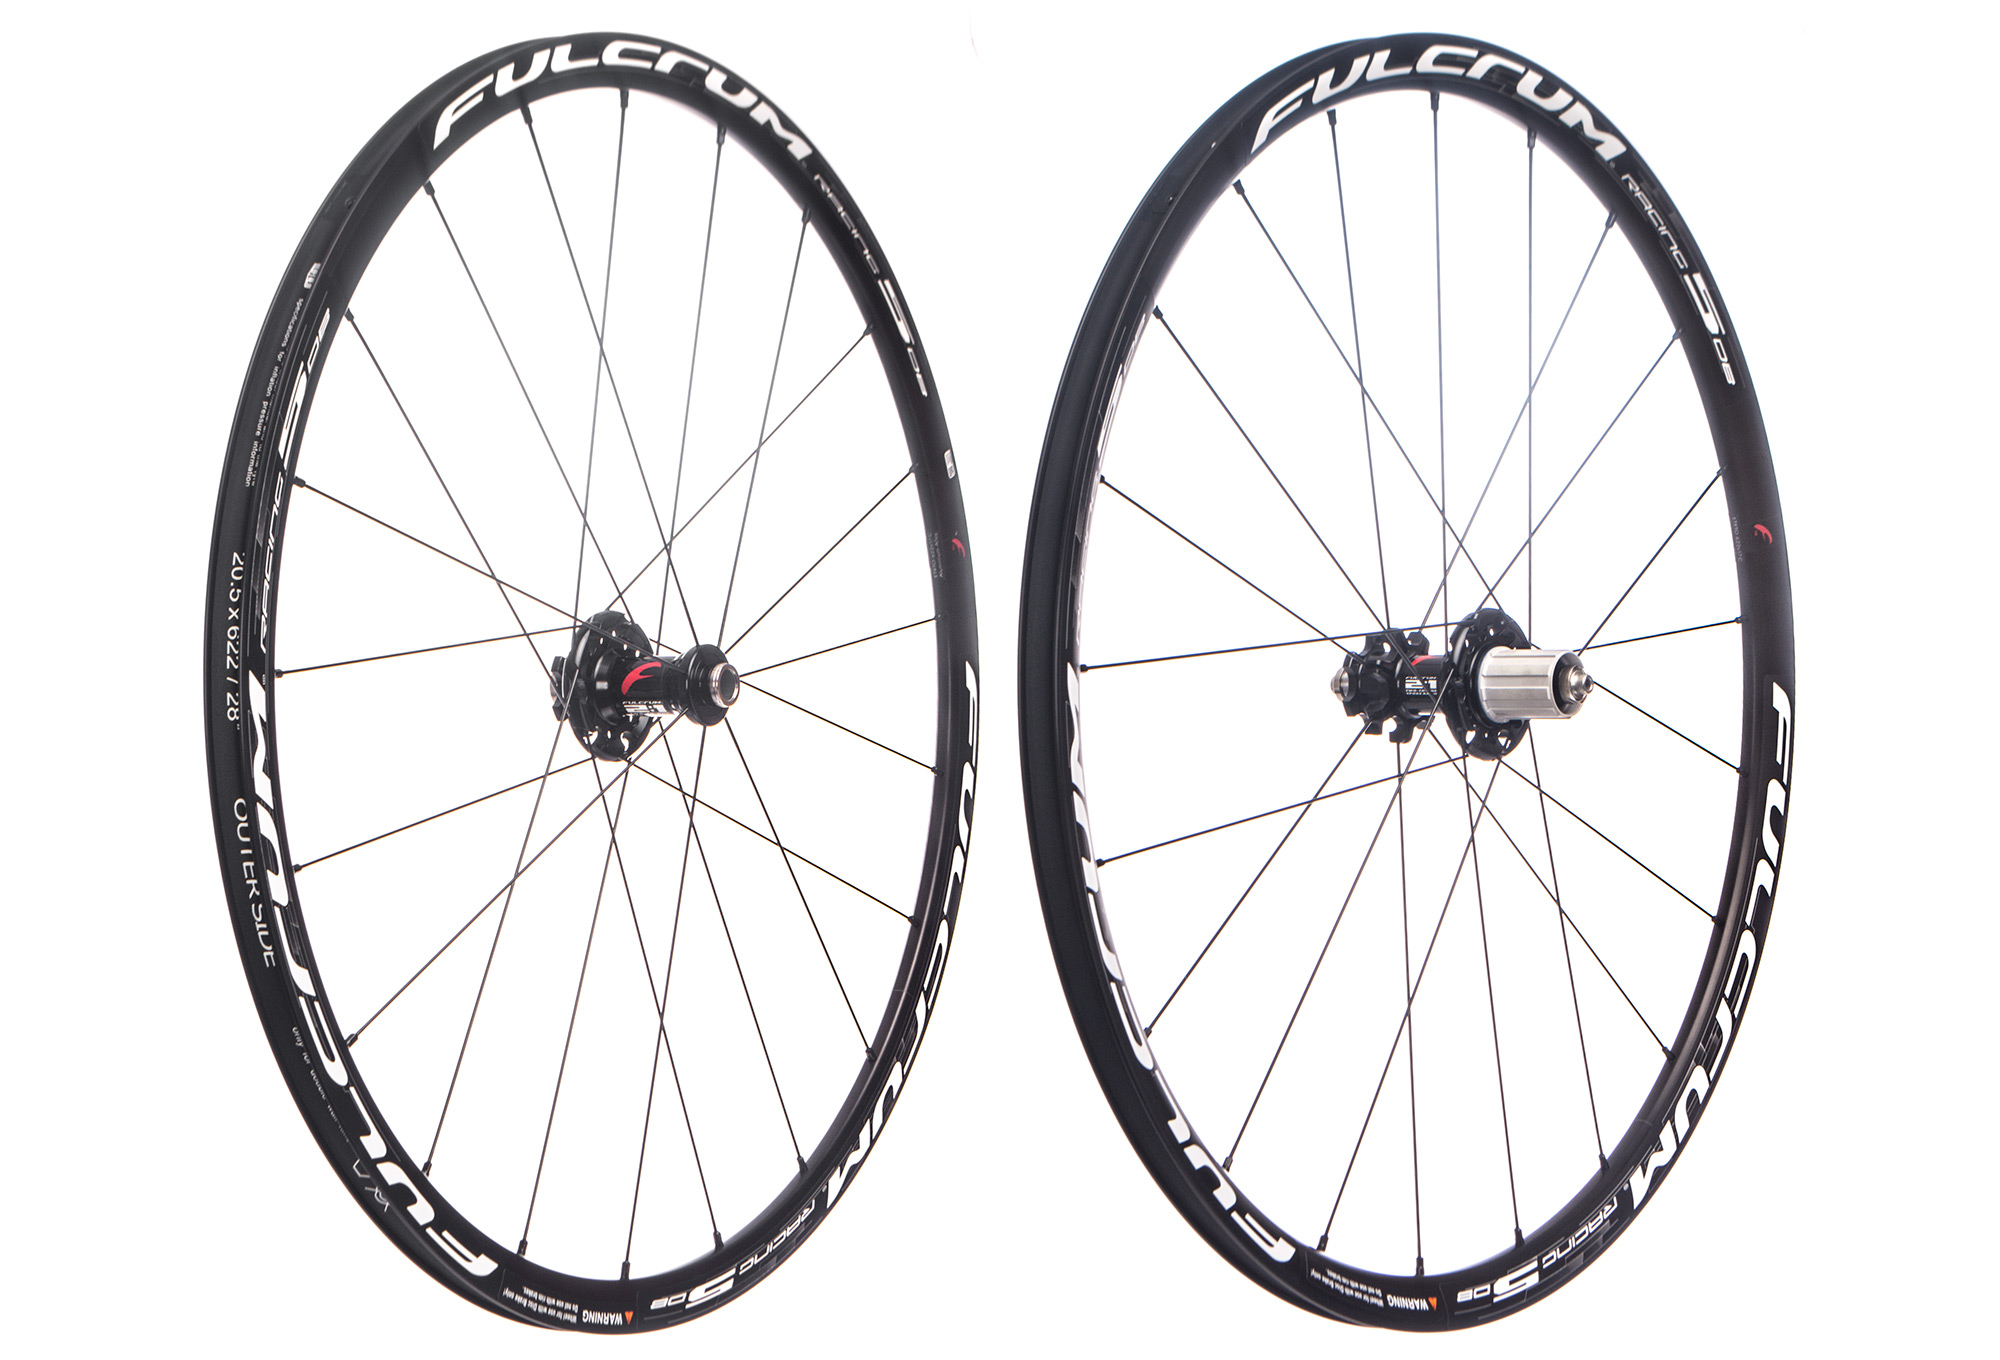 fulcrum racing 5 disc review